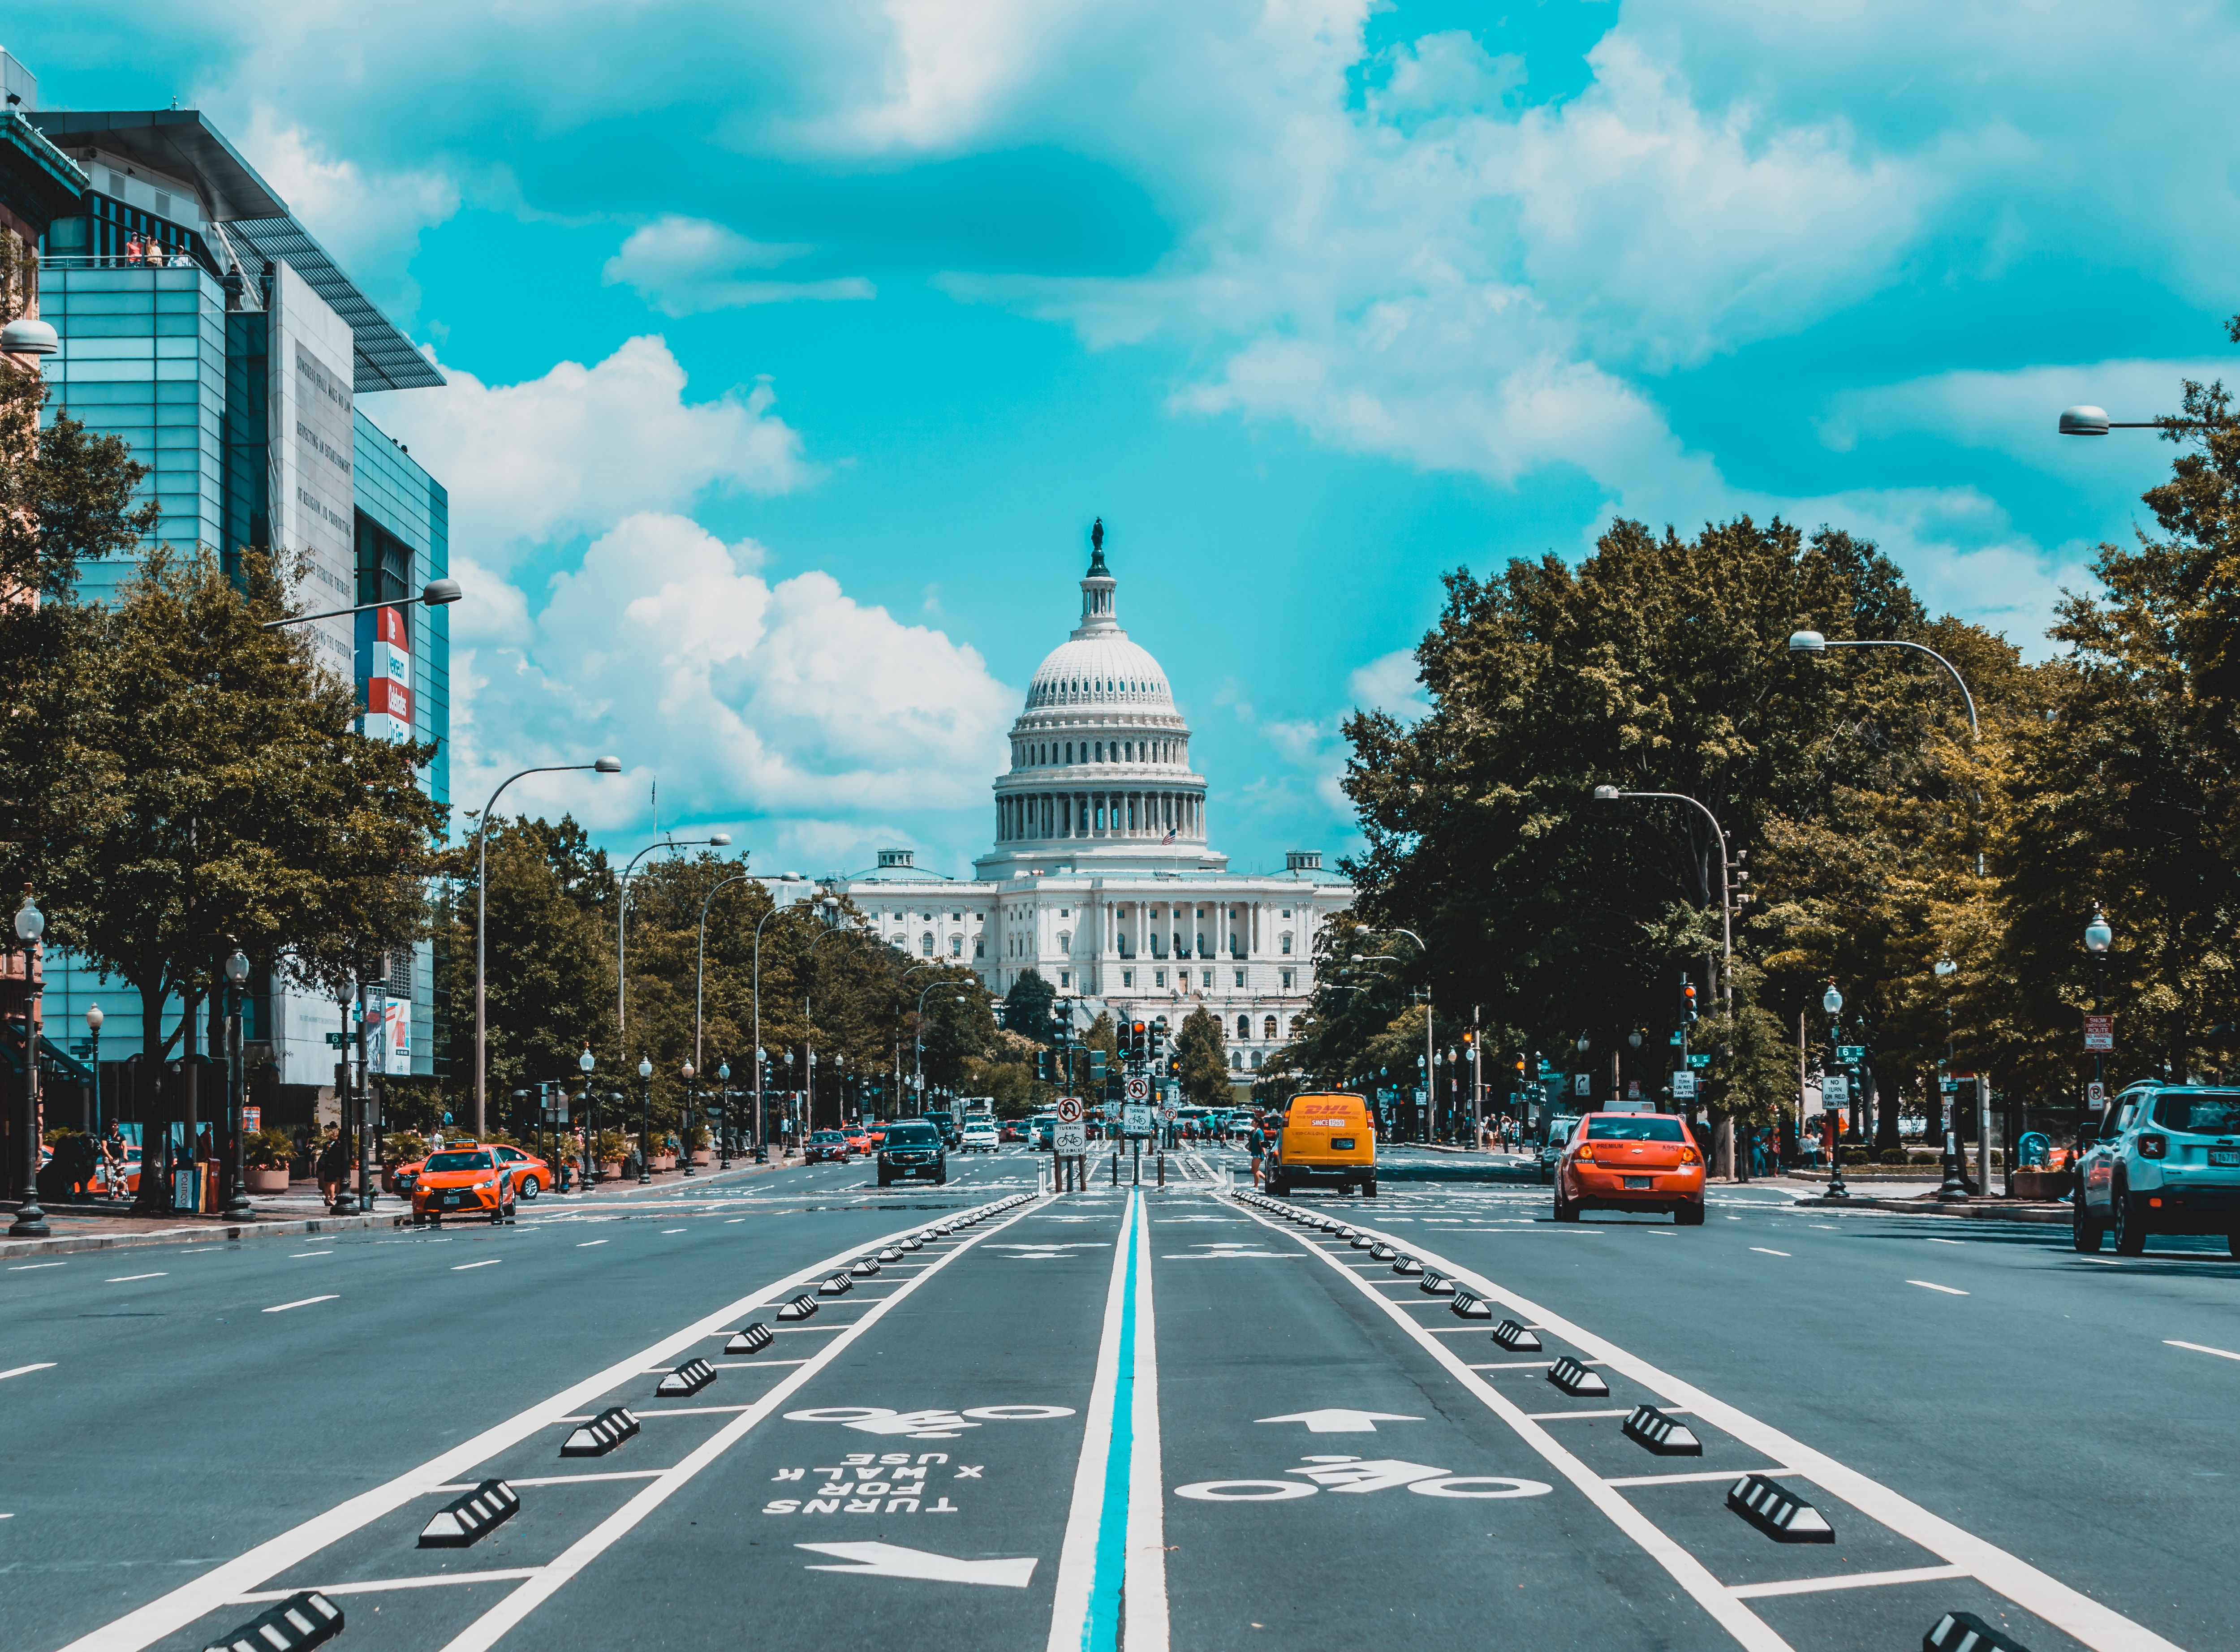 Policy Recommendations: America's Leadership on Democracy Matters